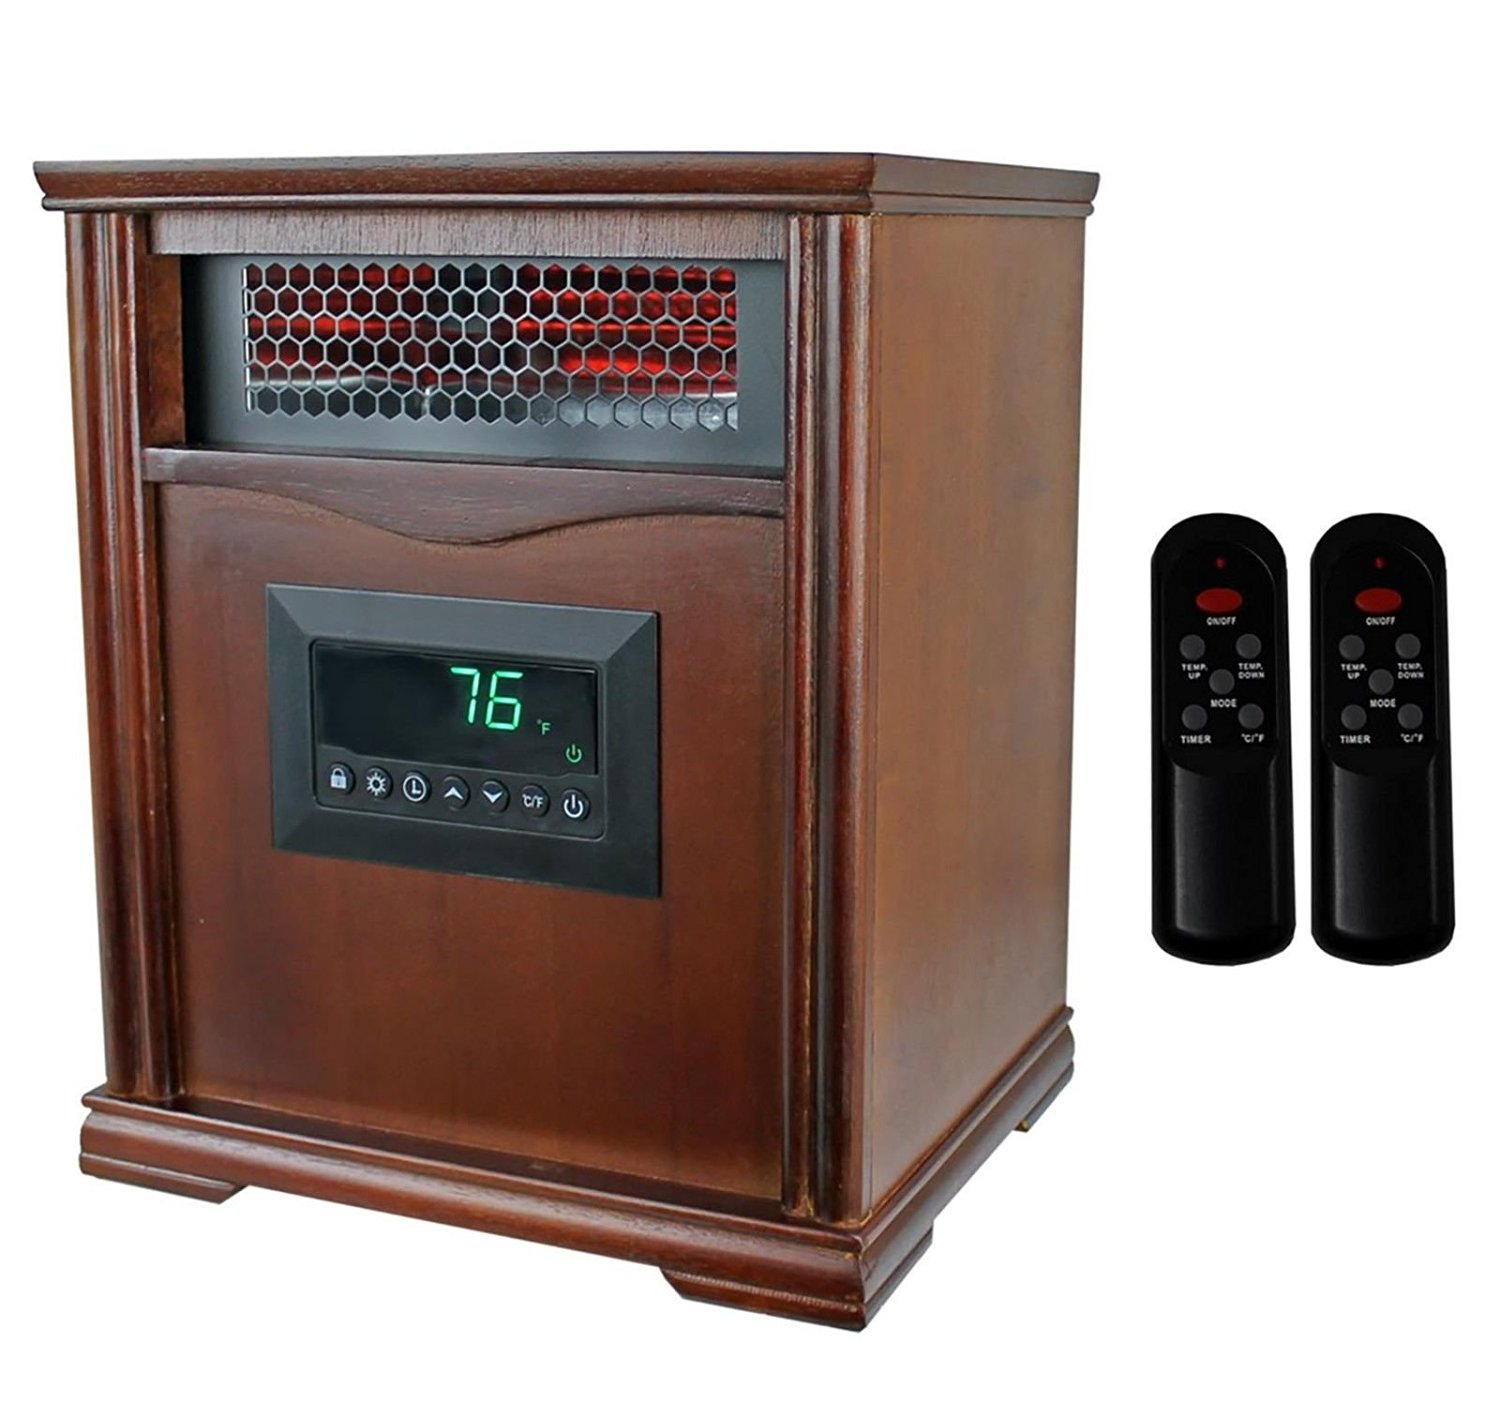 LifeSmart LifePro LS-1001HH 1,500 Watts Infrared Quartz Electric Portable Heater